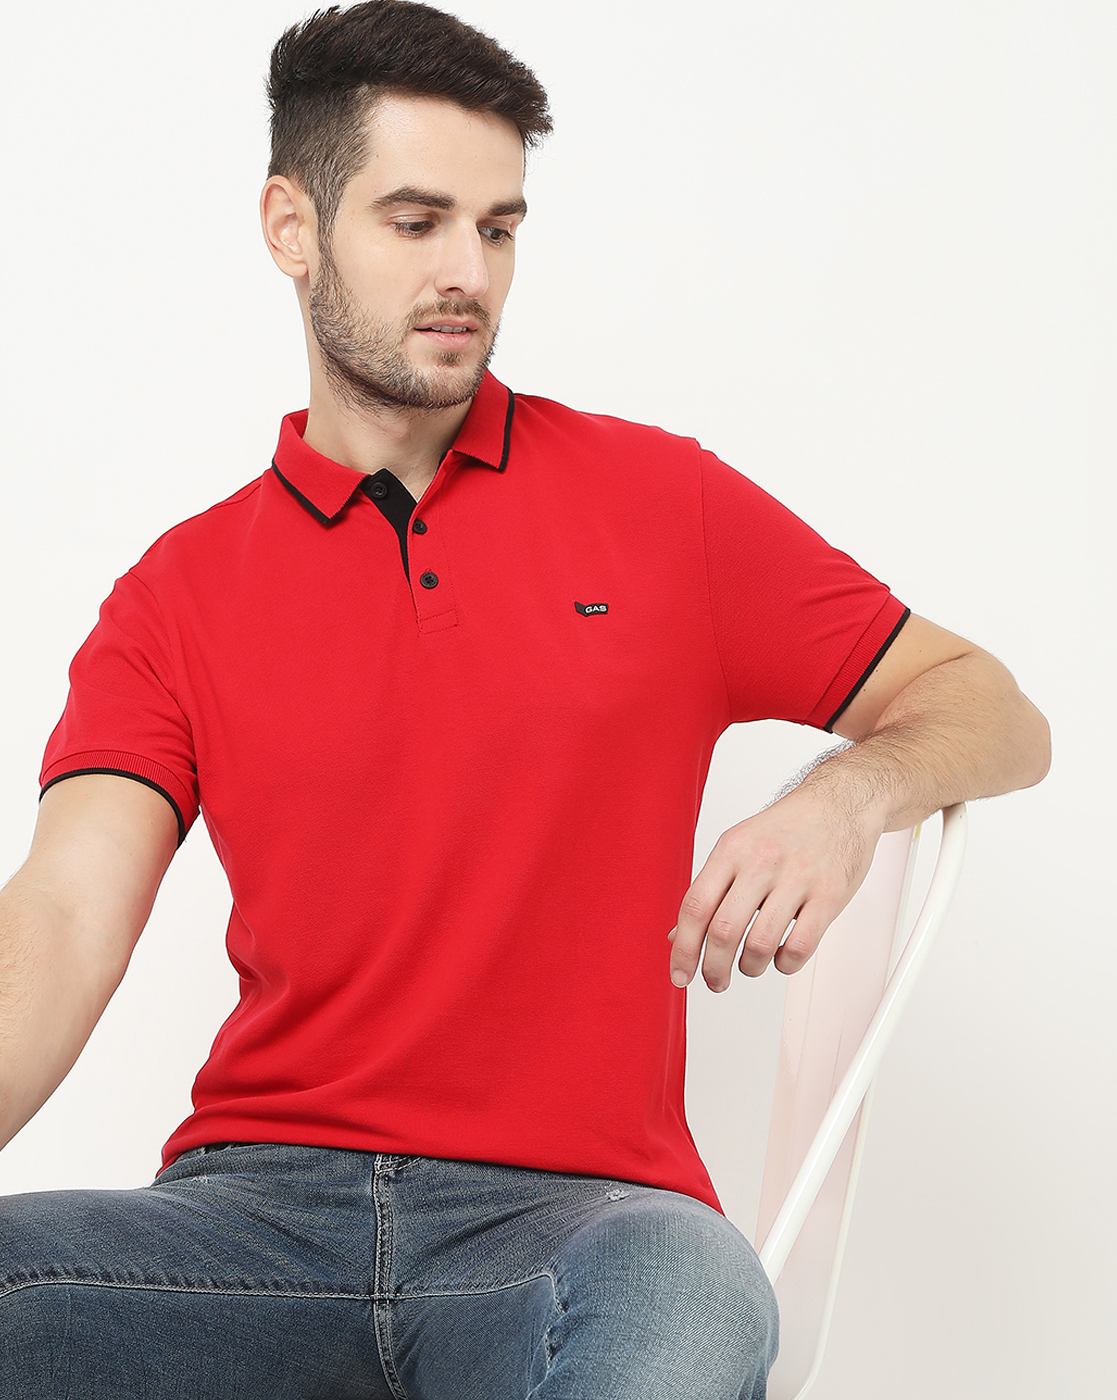 GAS | Ralph Basic Red Polo